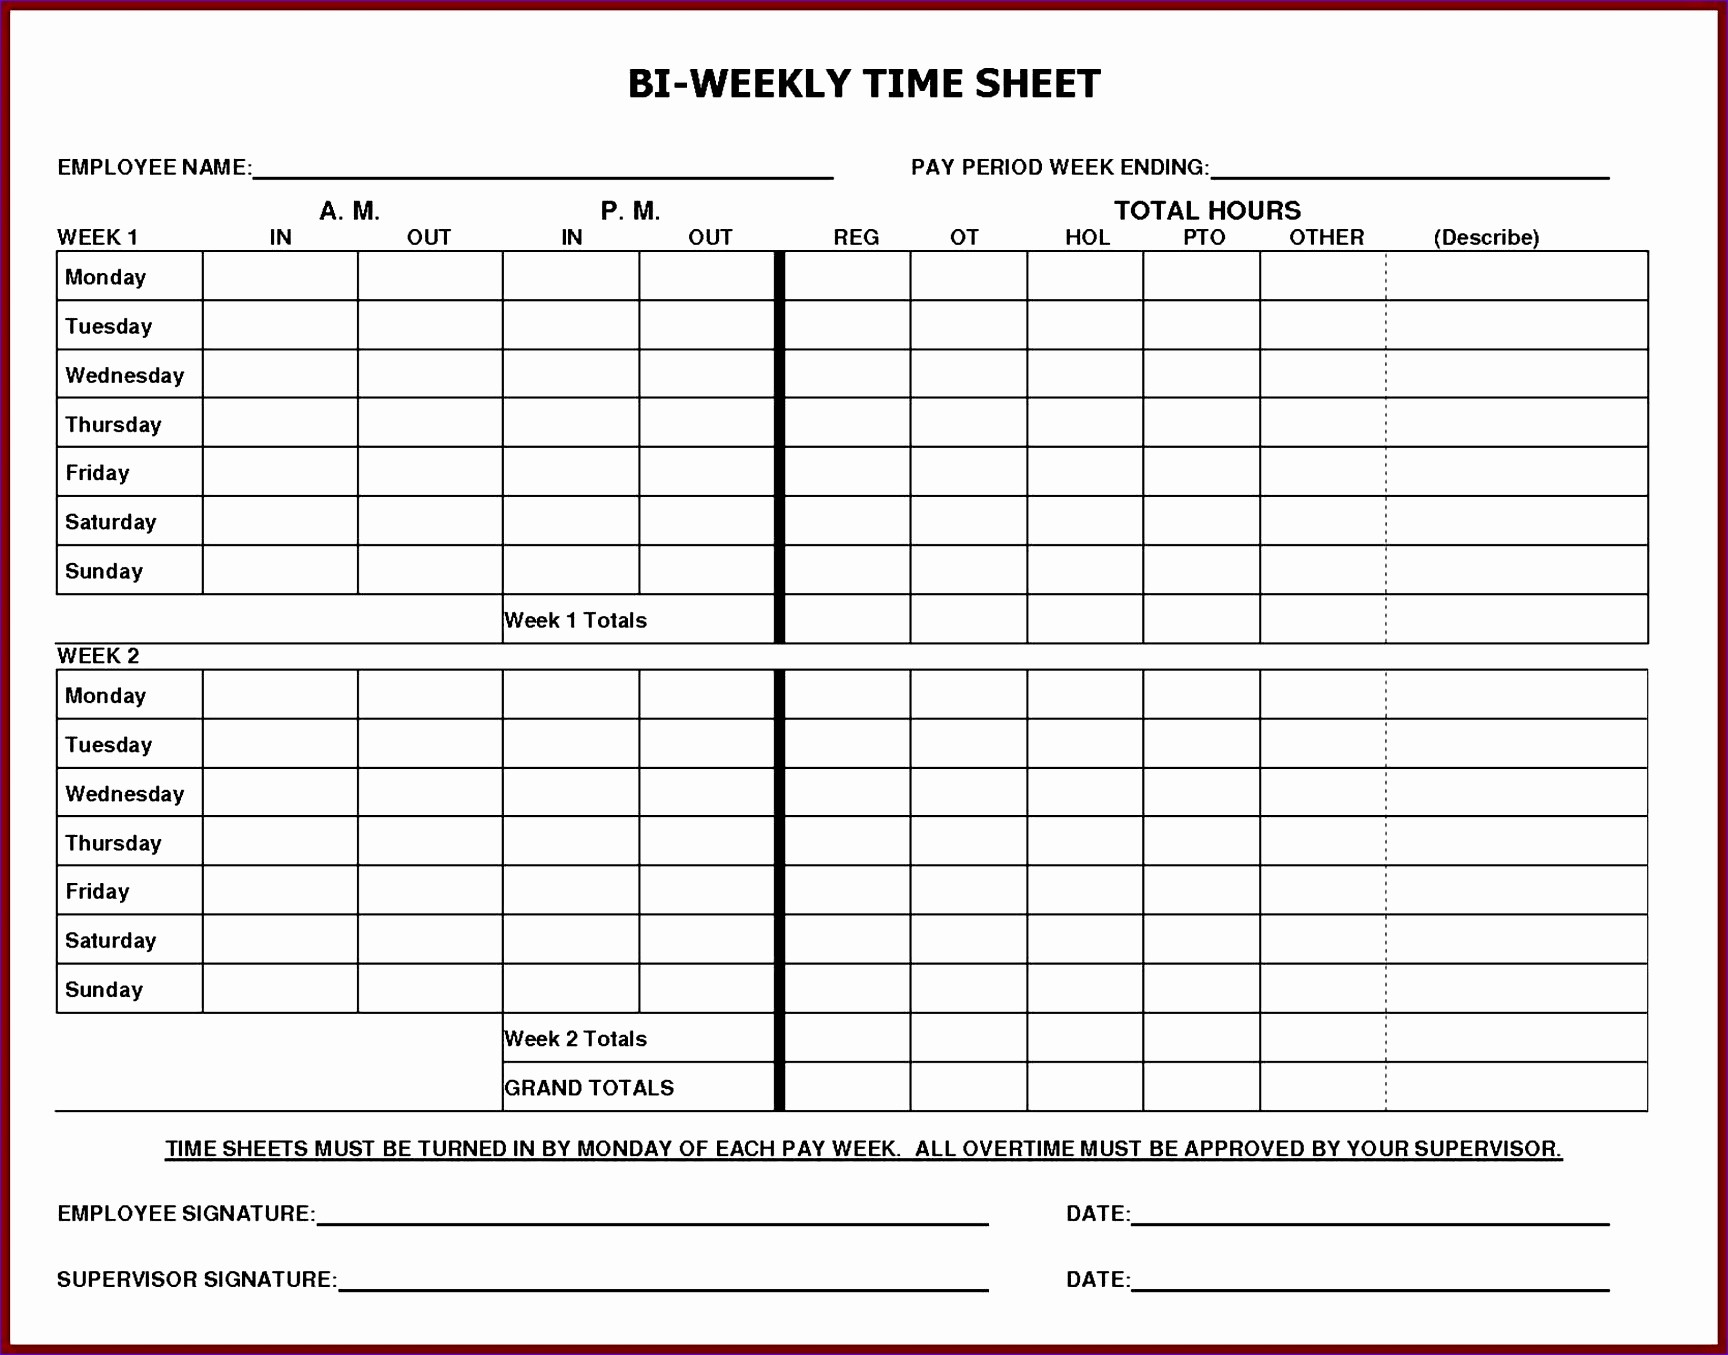 Free Excel Time Sheet Template Best Of 6 Free Excel Timesheet Template with formulas